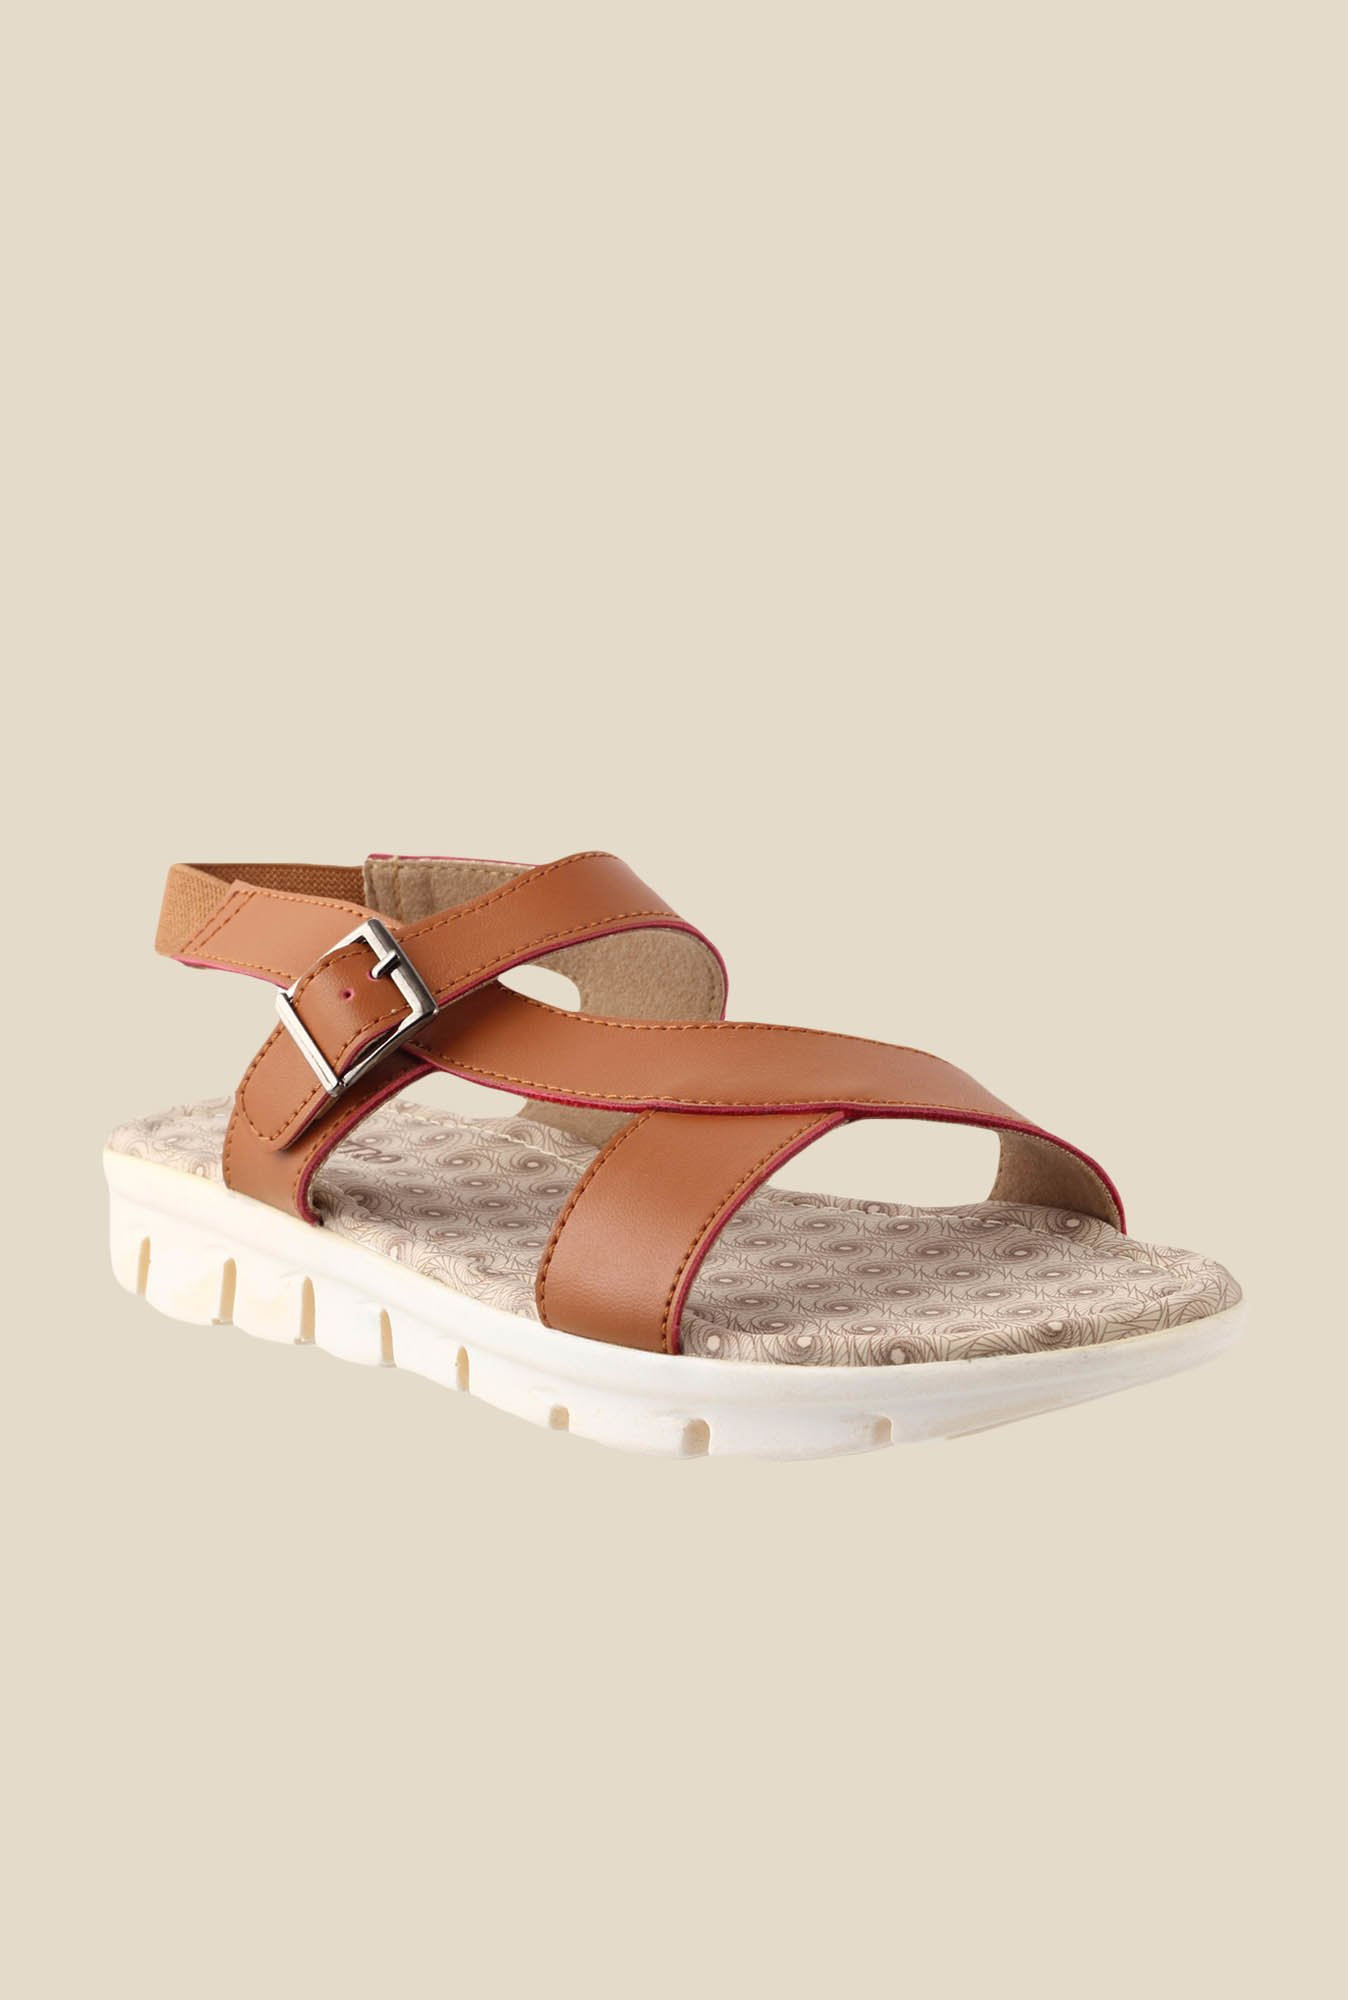 Metro Tan Ankle Strap Sandals